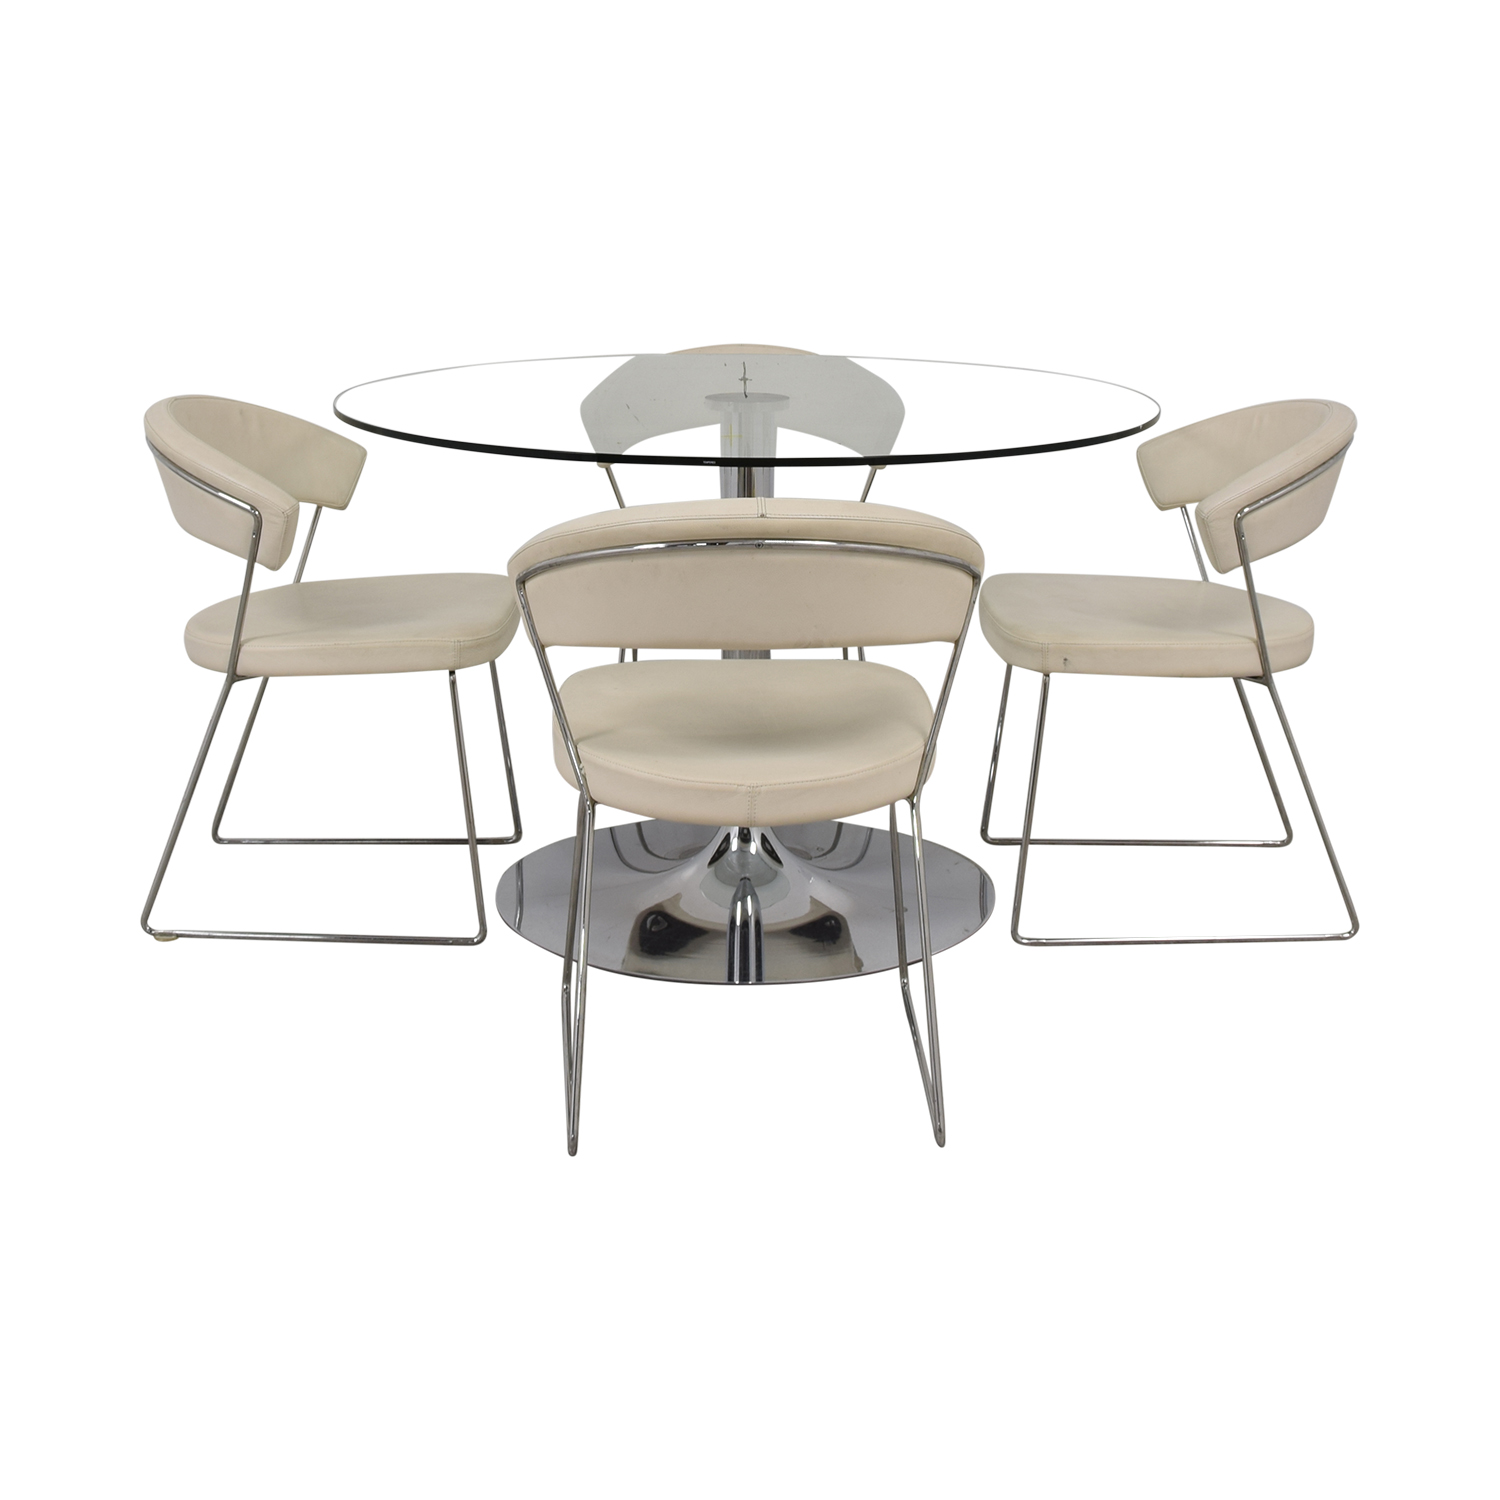 Calligaris Calligaris Planet Glass Dining Table with Calligaris New York  Chairs on sale